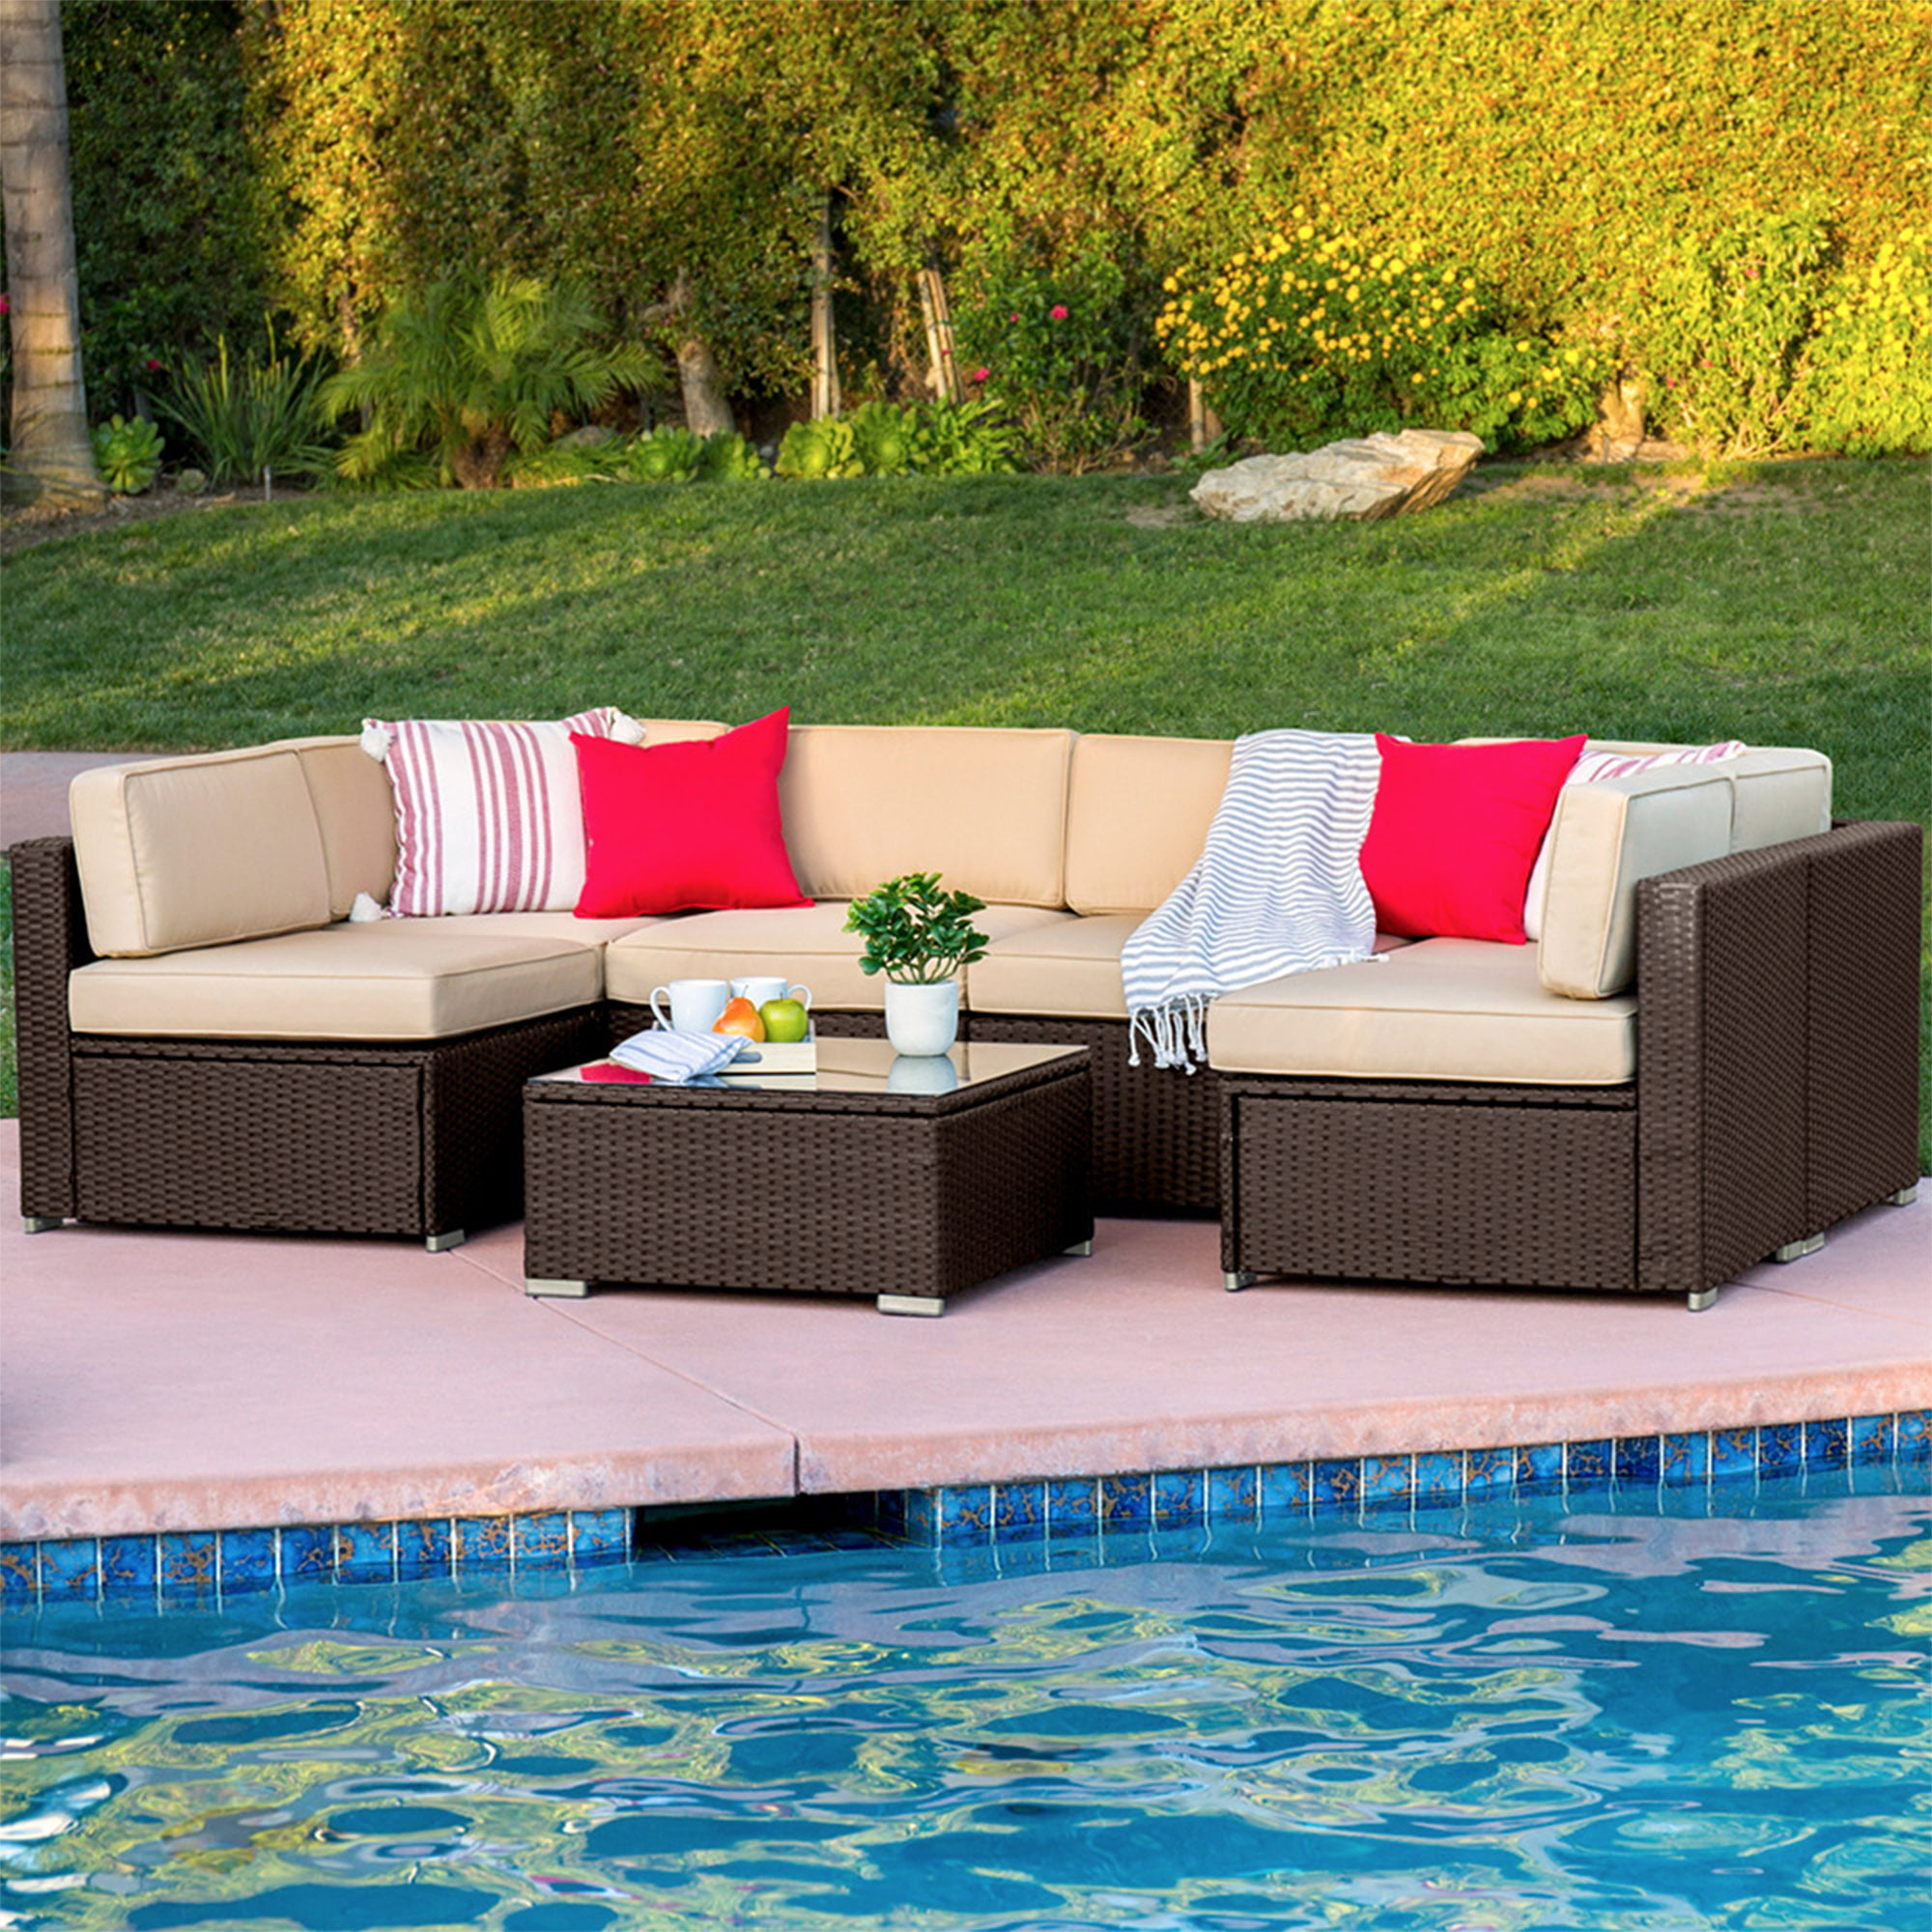 Superb Best Choice Products 7 Piece Outdoor Modular Sectional Andrewgaddart Wooden Chair Designs For Living Room Andrewgaddartcom